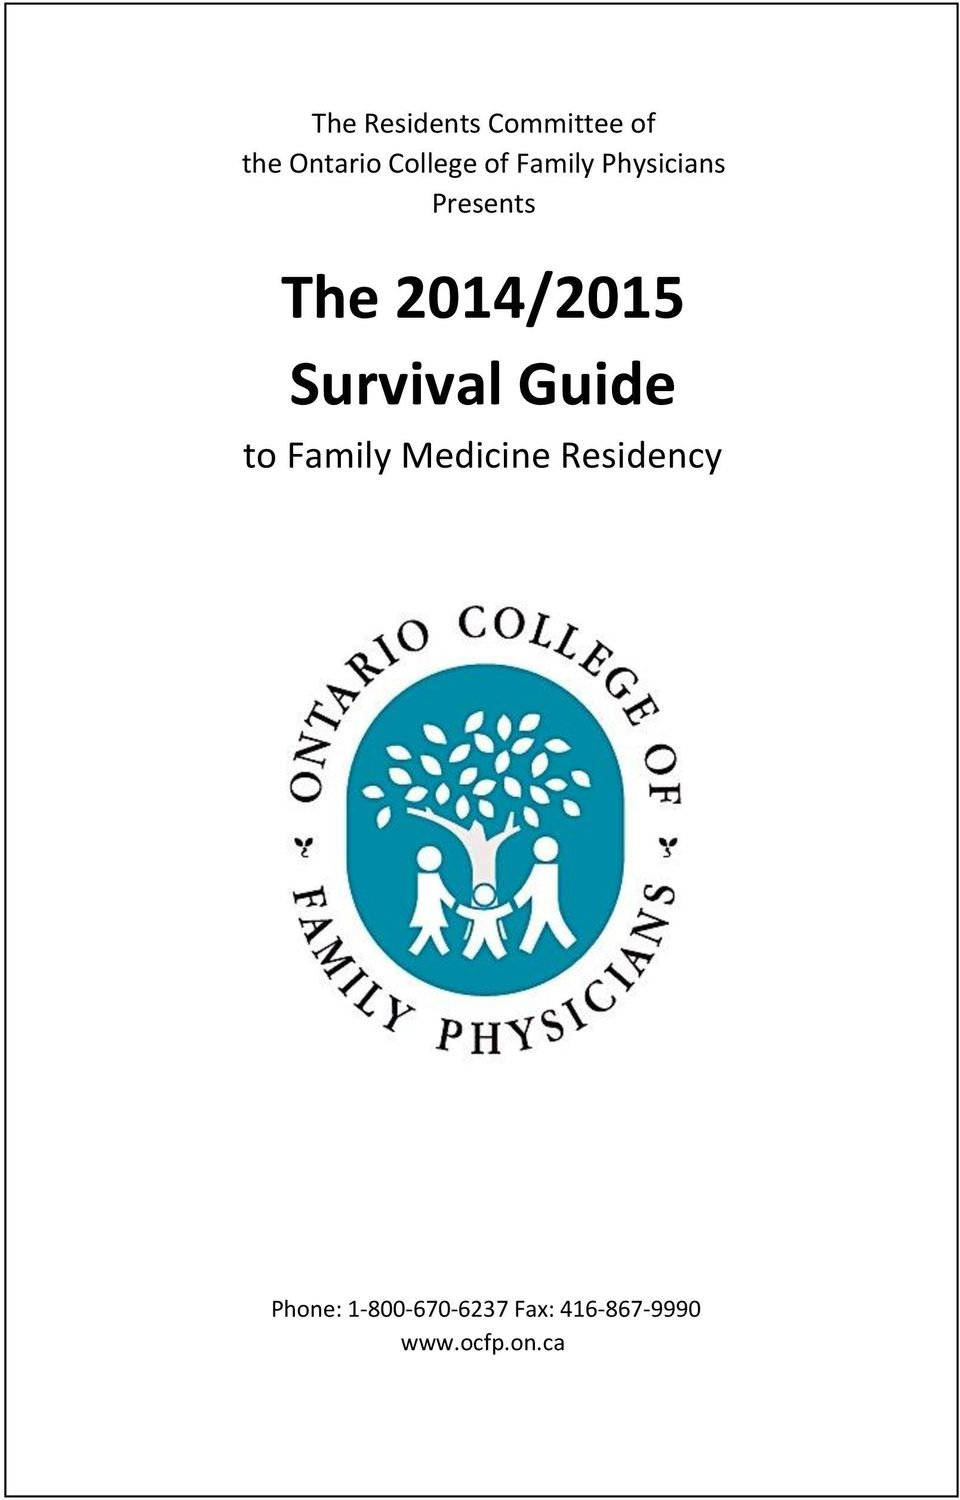 Physicians Presents The 2014/2015 Survival Guide to Family